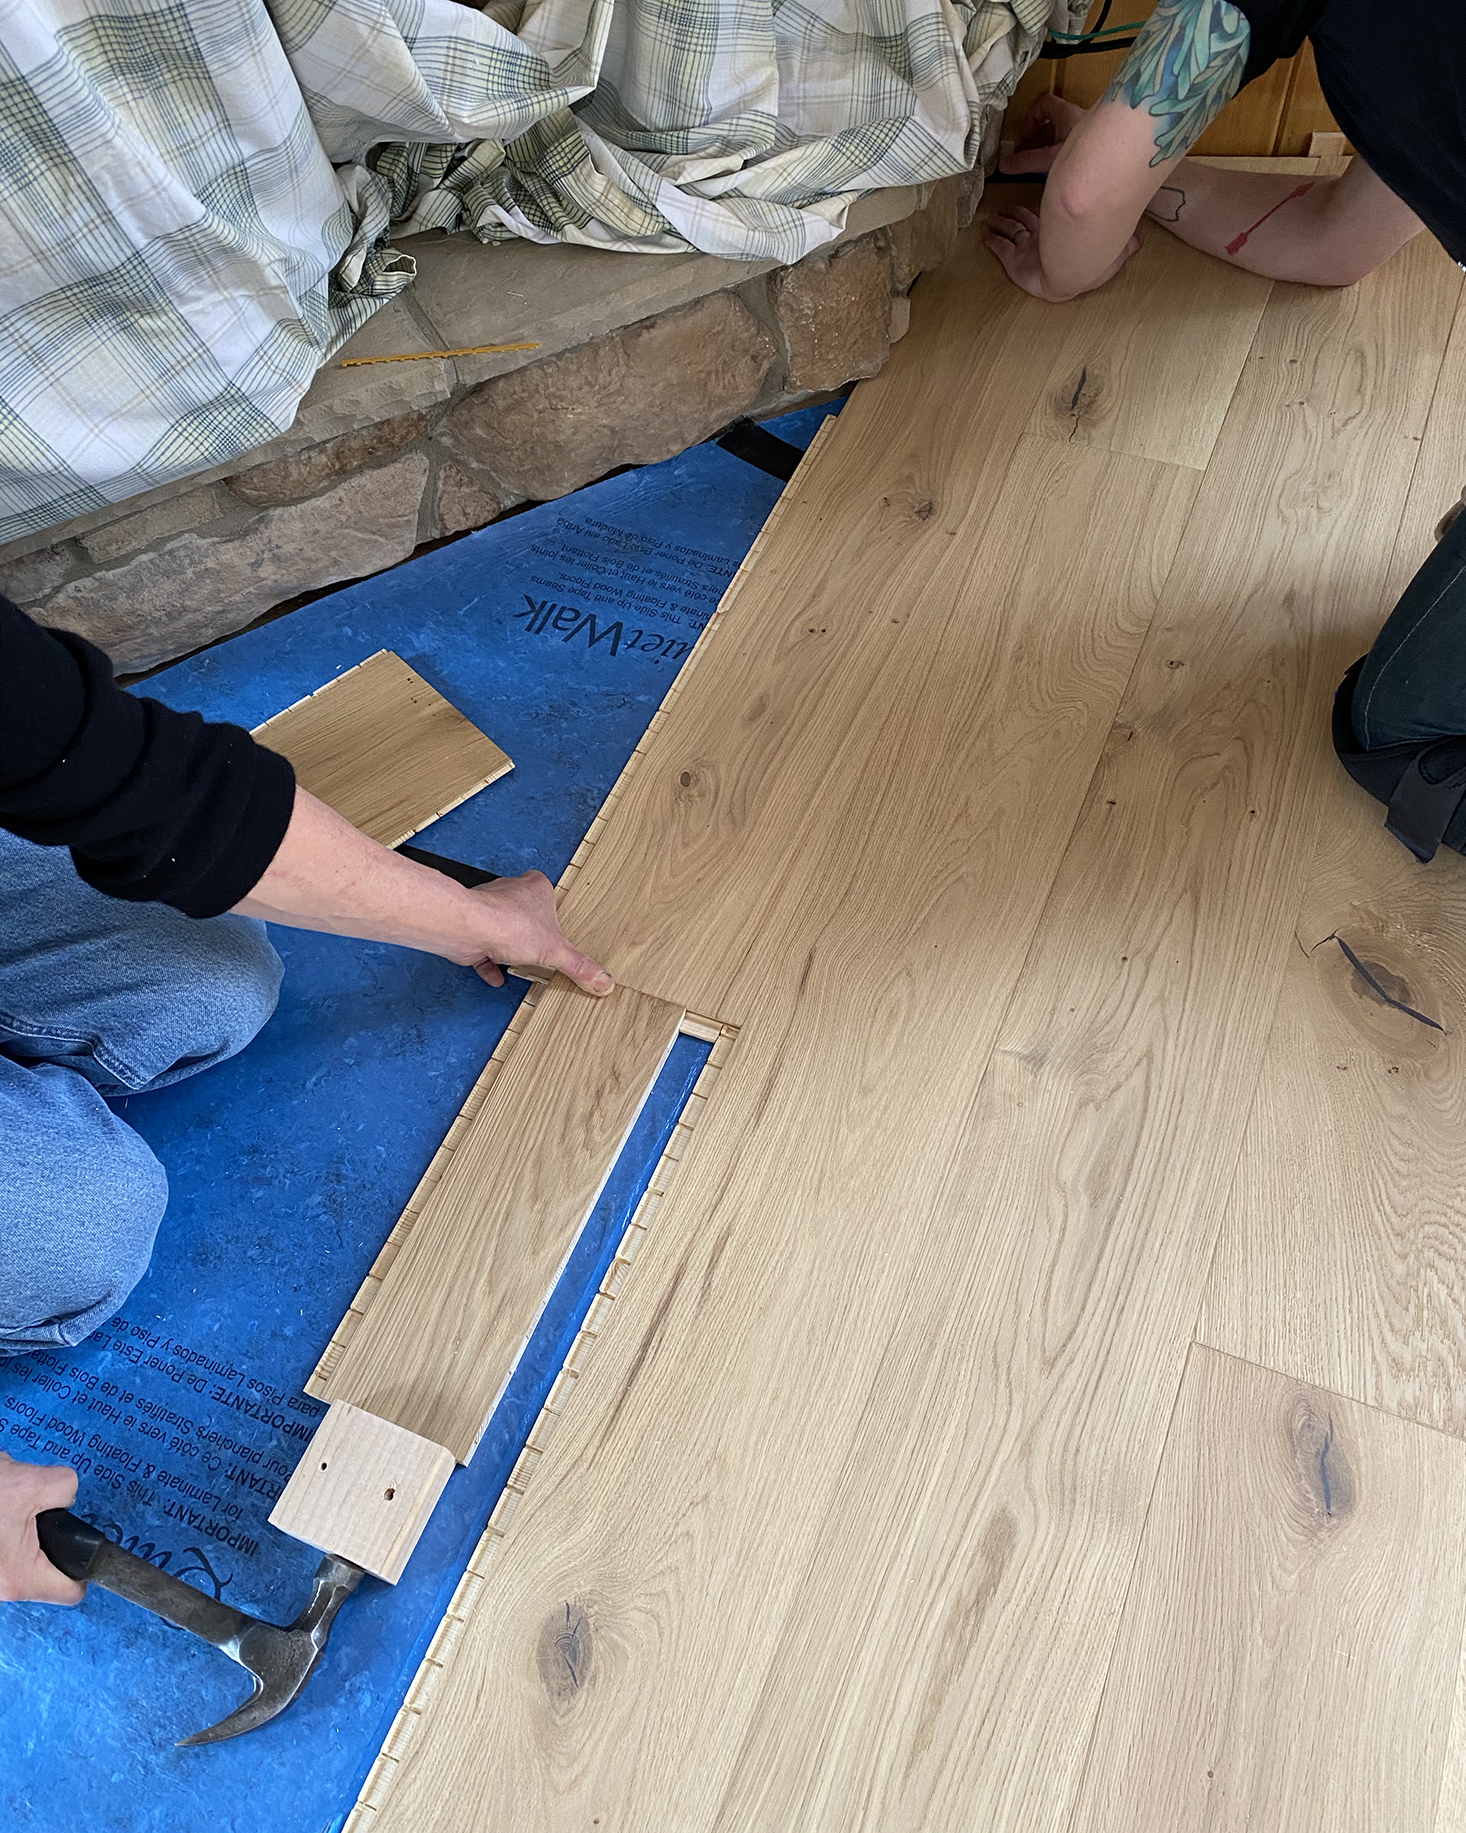 Tapping stuga boards in under fireplace